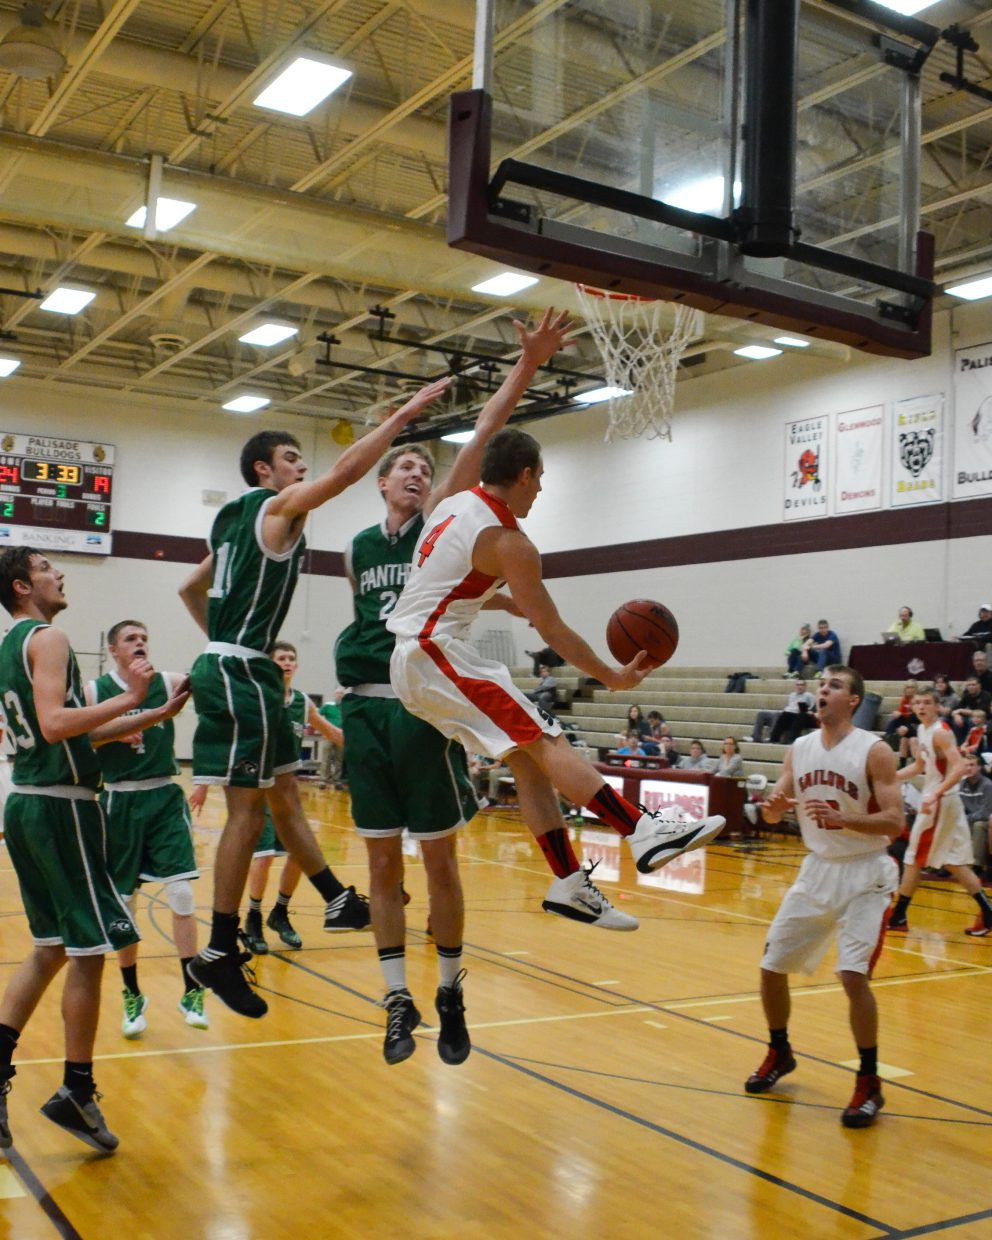 A nice assist from Mitch McCannon helps Nathan DePuy score two during Steamboat Springs' game against Delta in the Western Slope tournament. Steamboat won, 45-27.